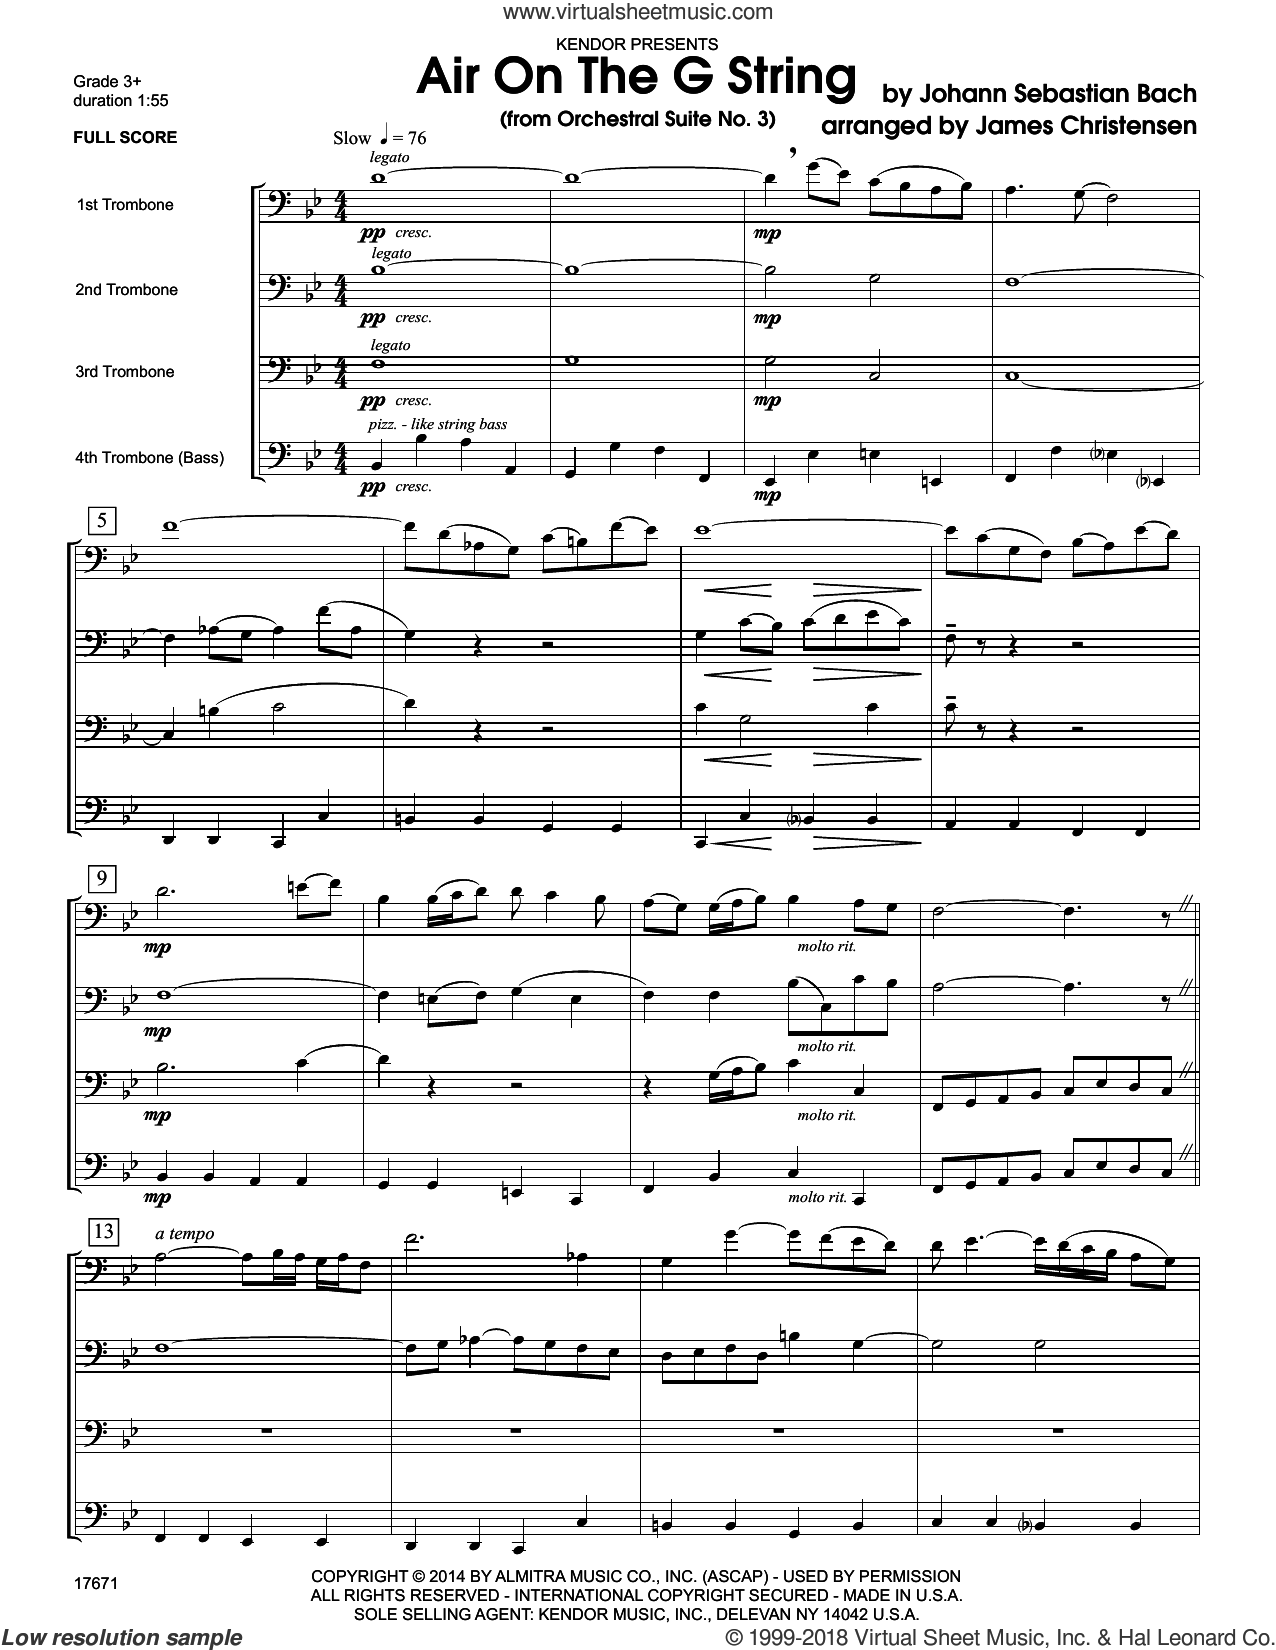 Bach - Air On The G String (from Orchestral Suite No  3) sheet music  (complete collection) for four trombones